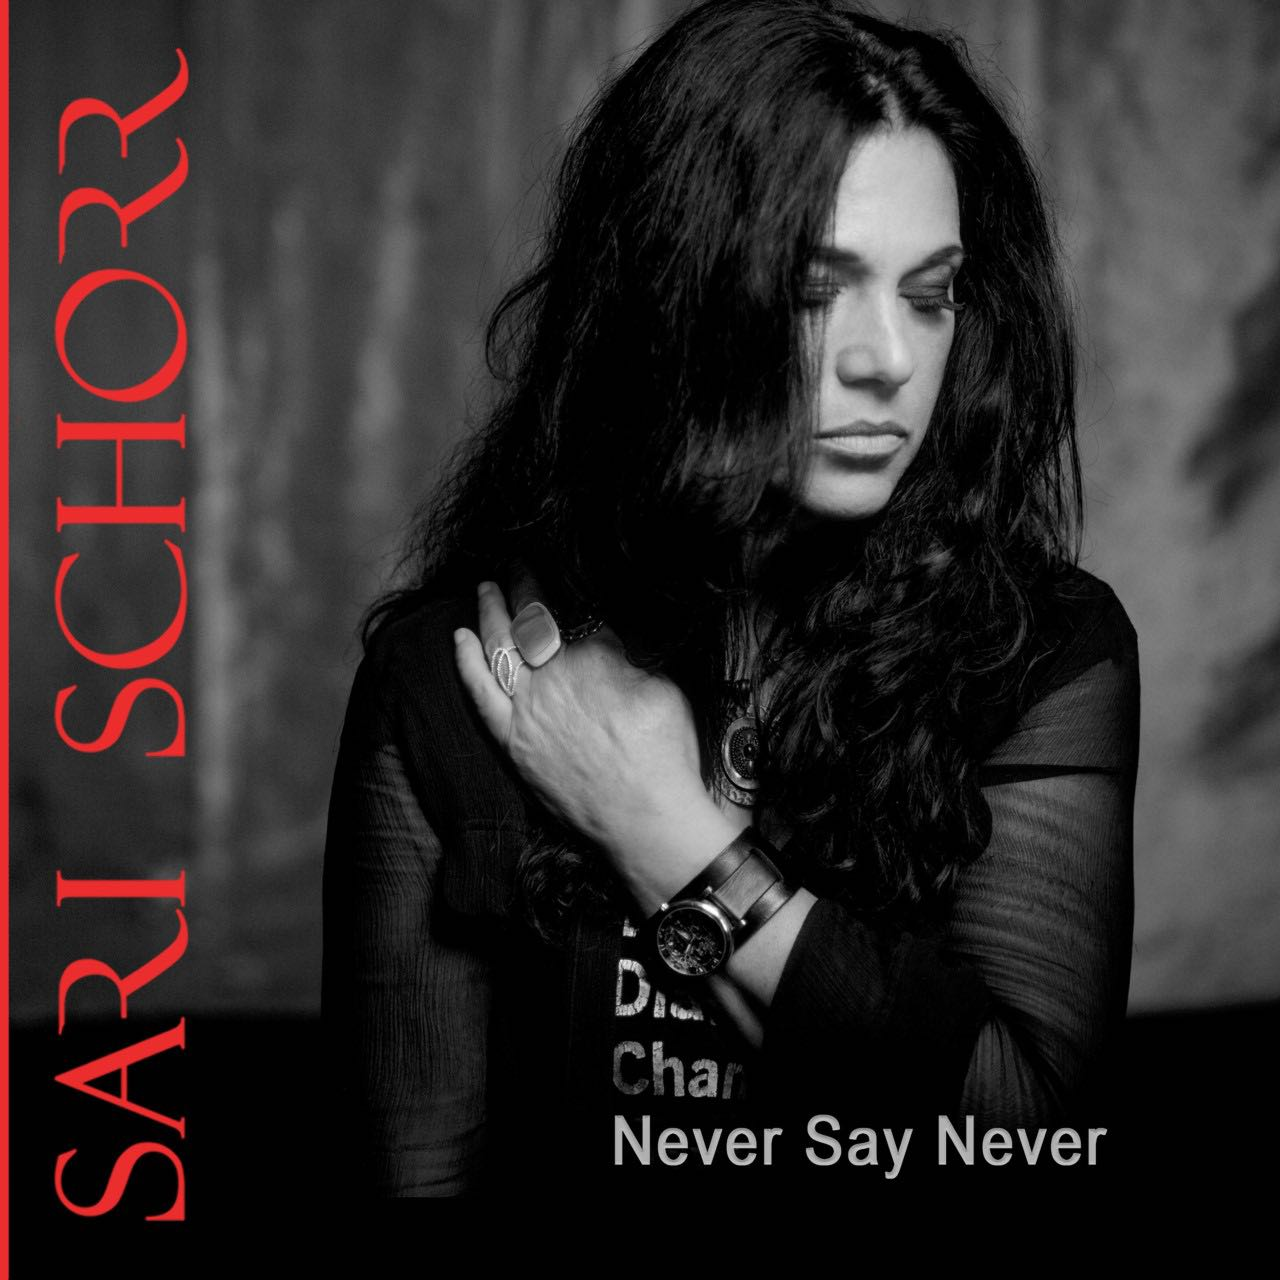 SARI SCHORR Never Say Never